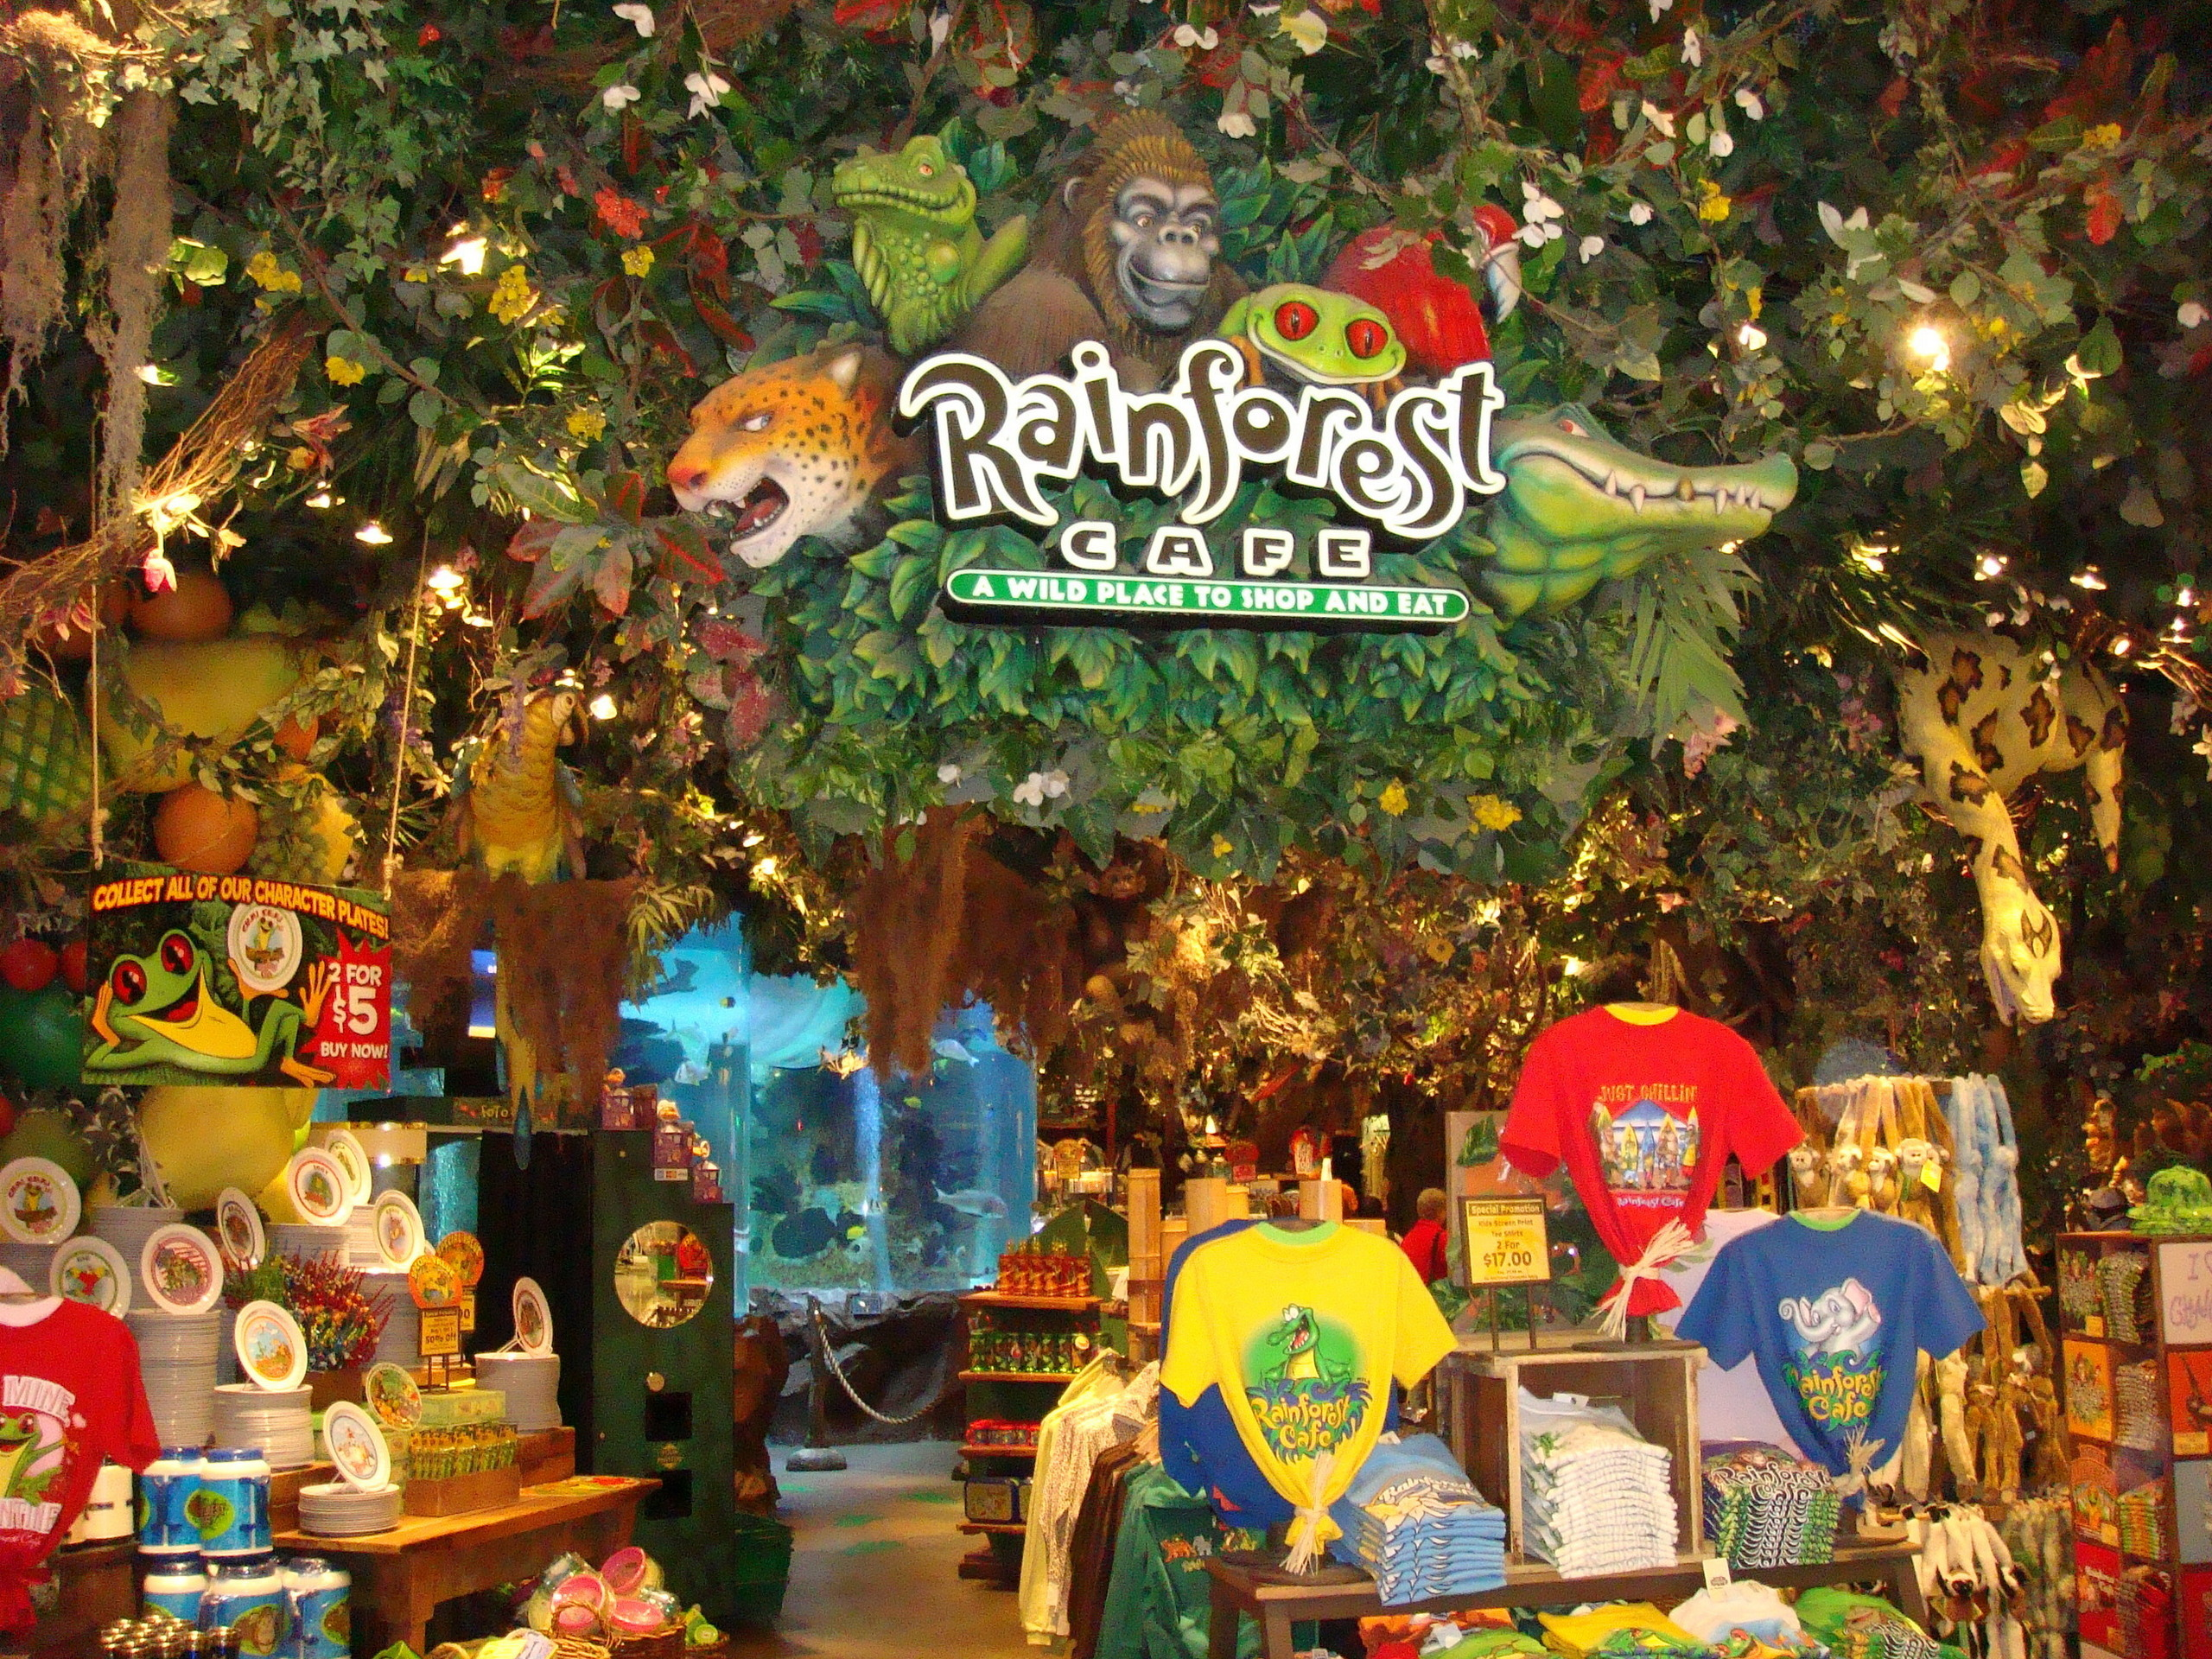 Rainforest Cafe Images Cool Gift Shop Hd Wallpaper And